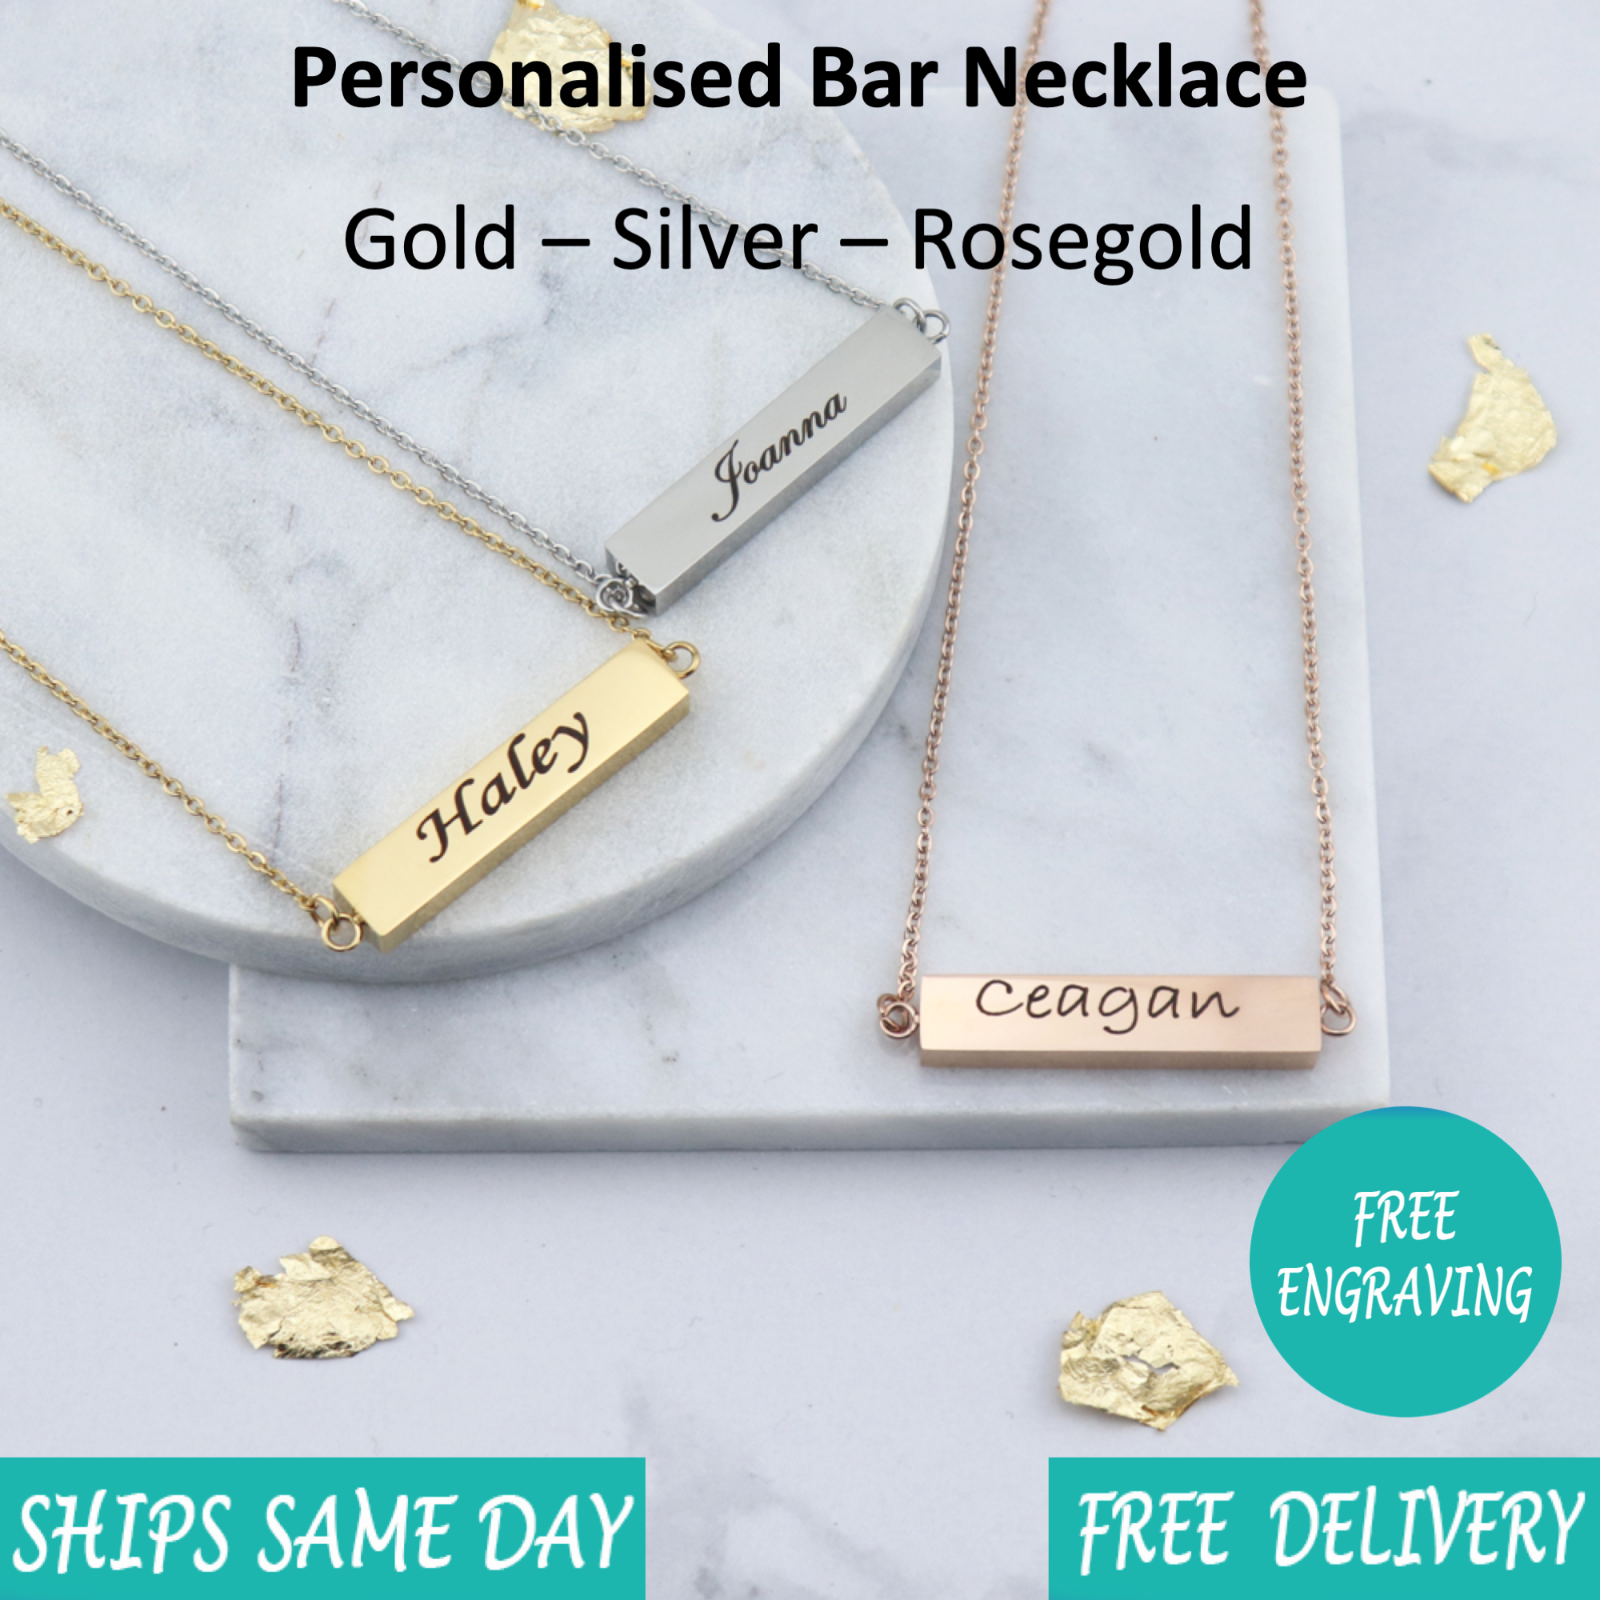 Custom Personalised Engraved Jewellery Bar Necklace Rose Gold Silver Ebay